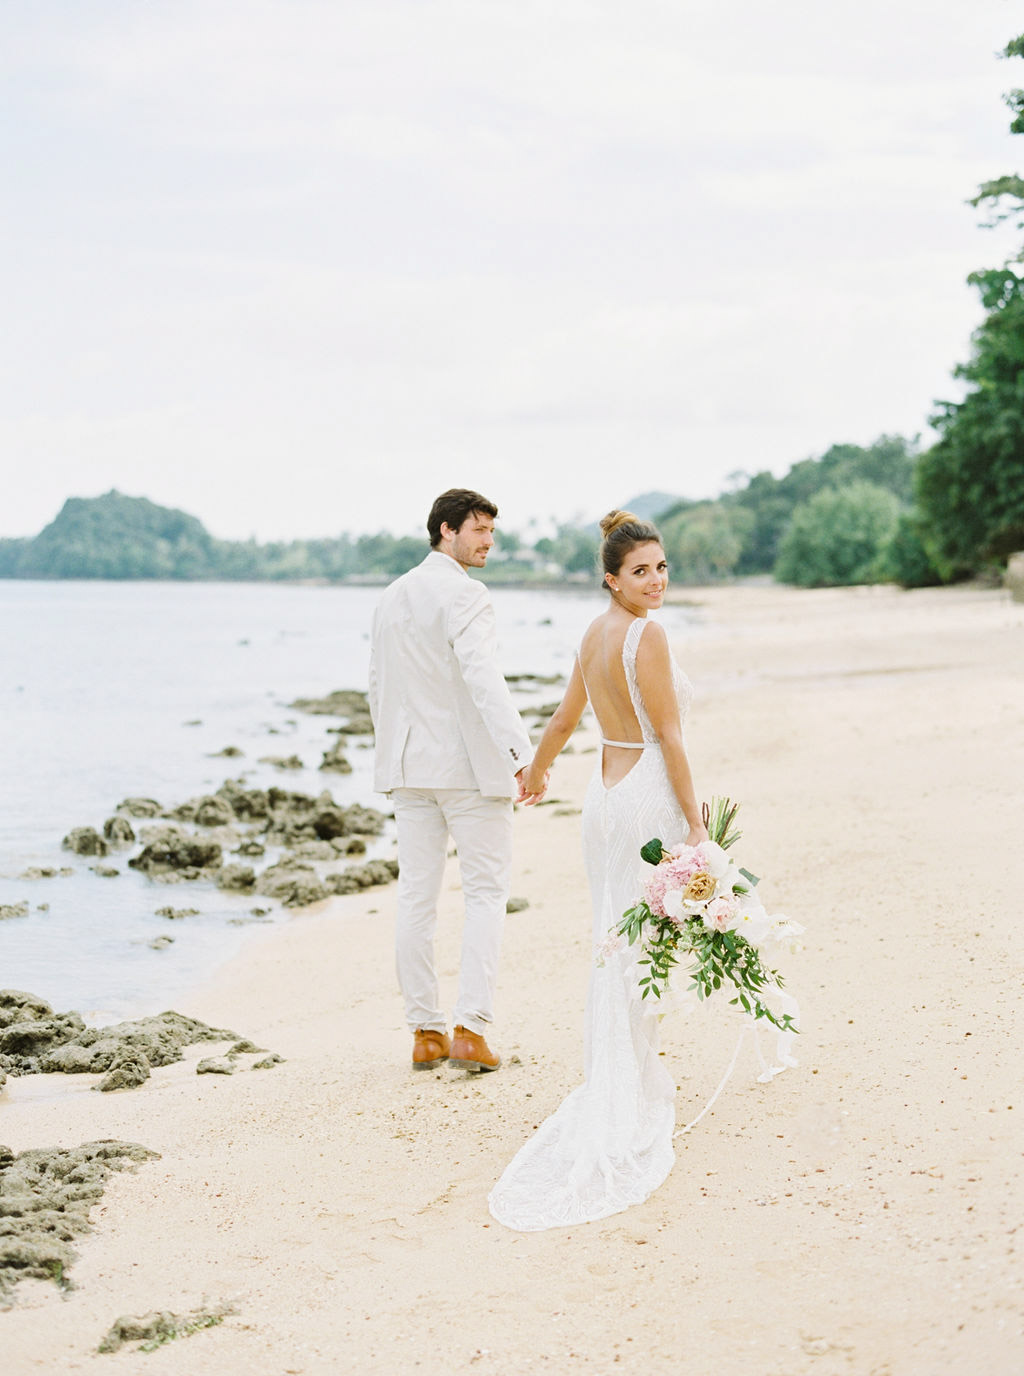 Thailand Wedding Venues Destination Koh Yao Noi By Fine Art Film Wedding Photographer Sheri McMahon-00041.jpg